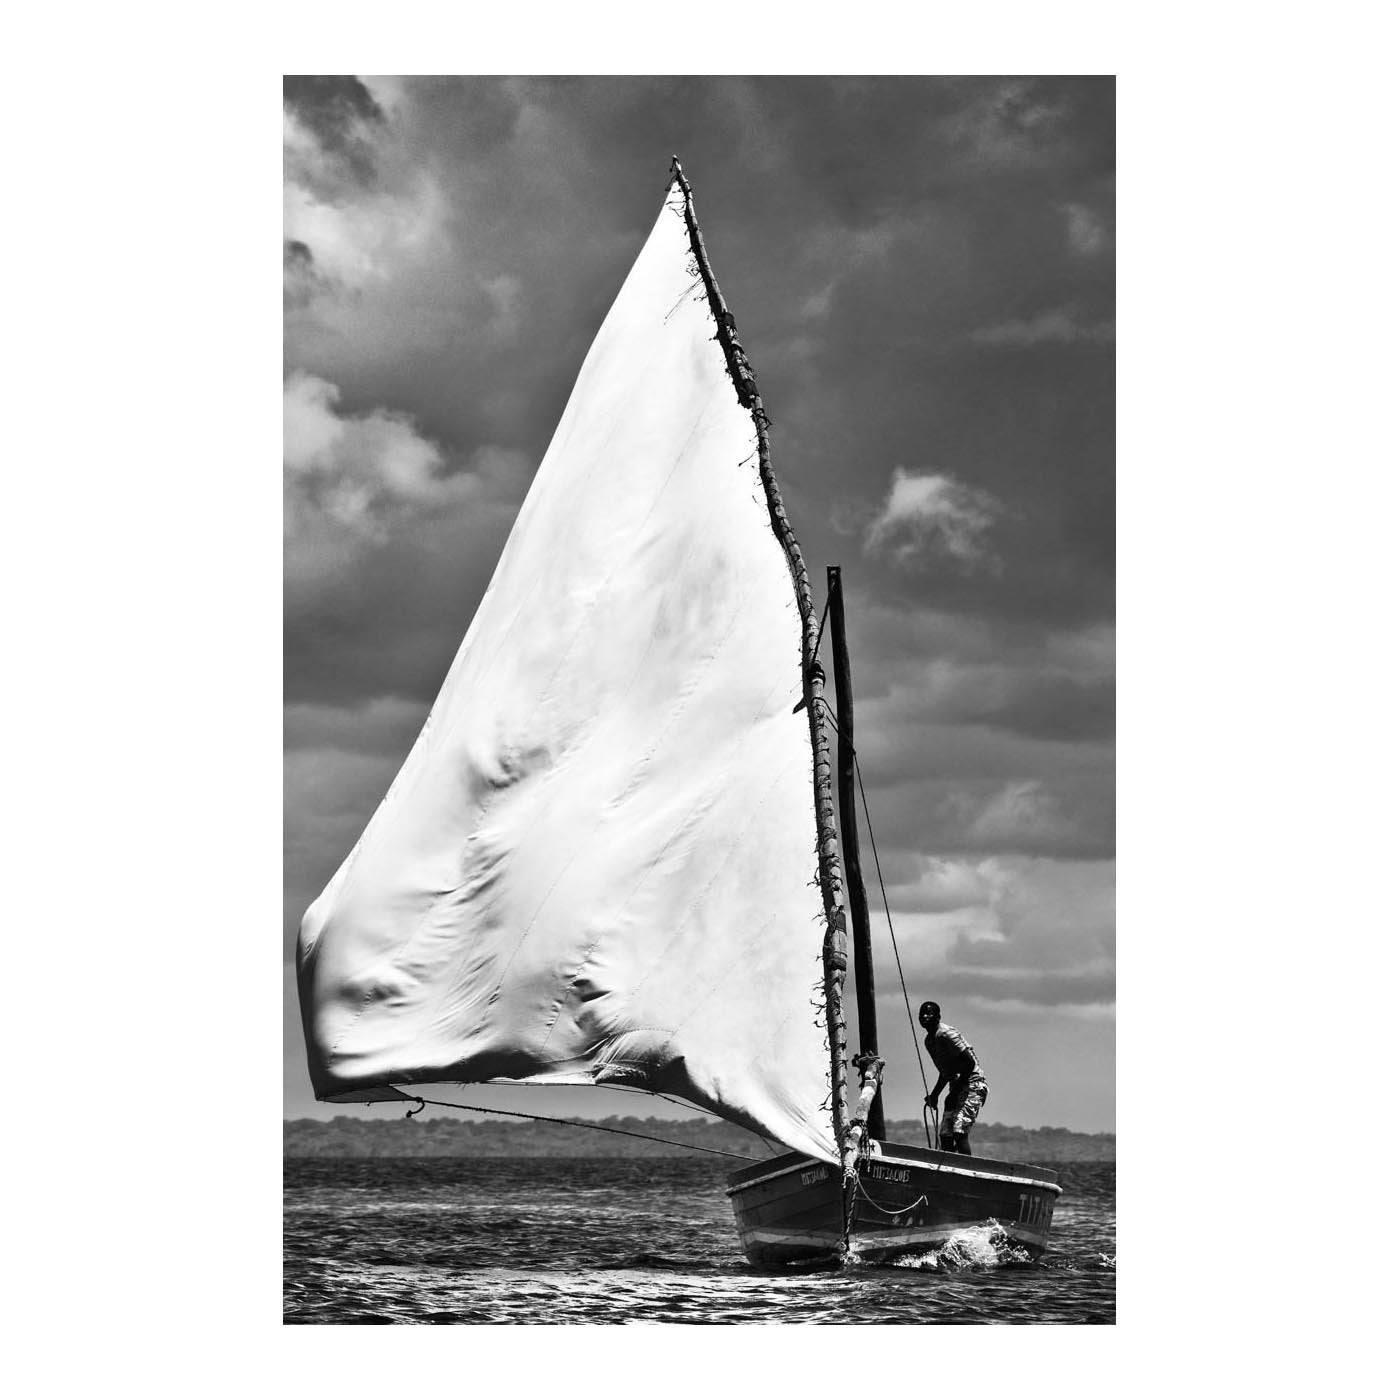 ILHA_04 by David Ballam at SARZA. art canvas, art prints, David Ballam, Dhow VI, framed canvas, Ilha Collection, Landscapes, limited edition, Mozambique, Moçambique, wall art